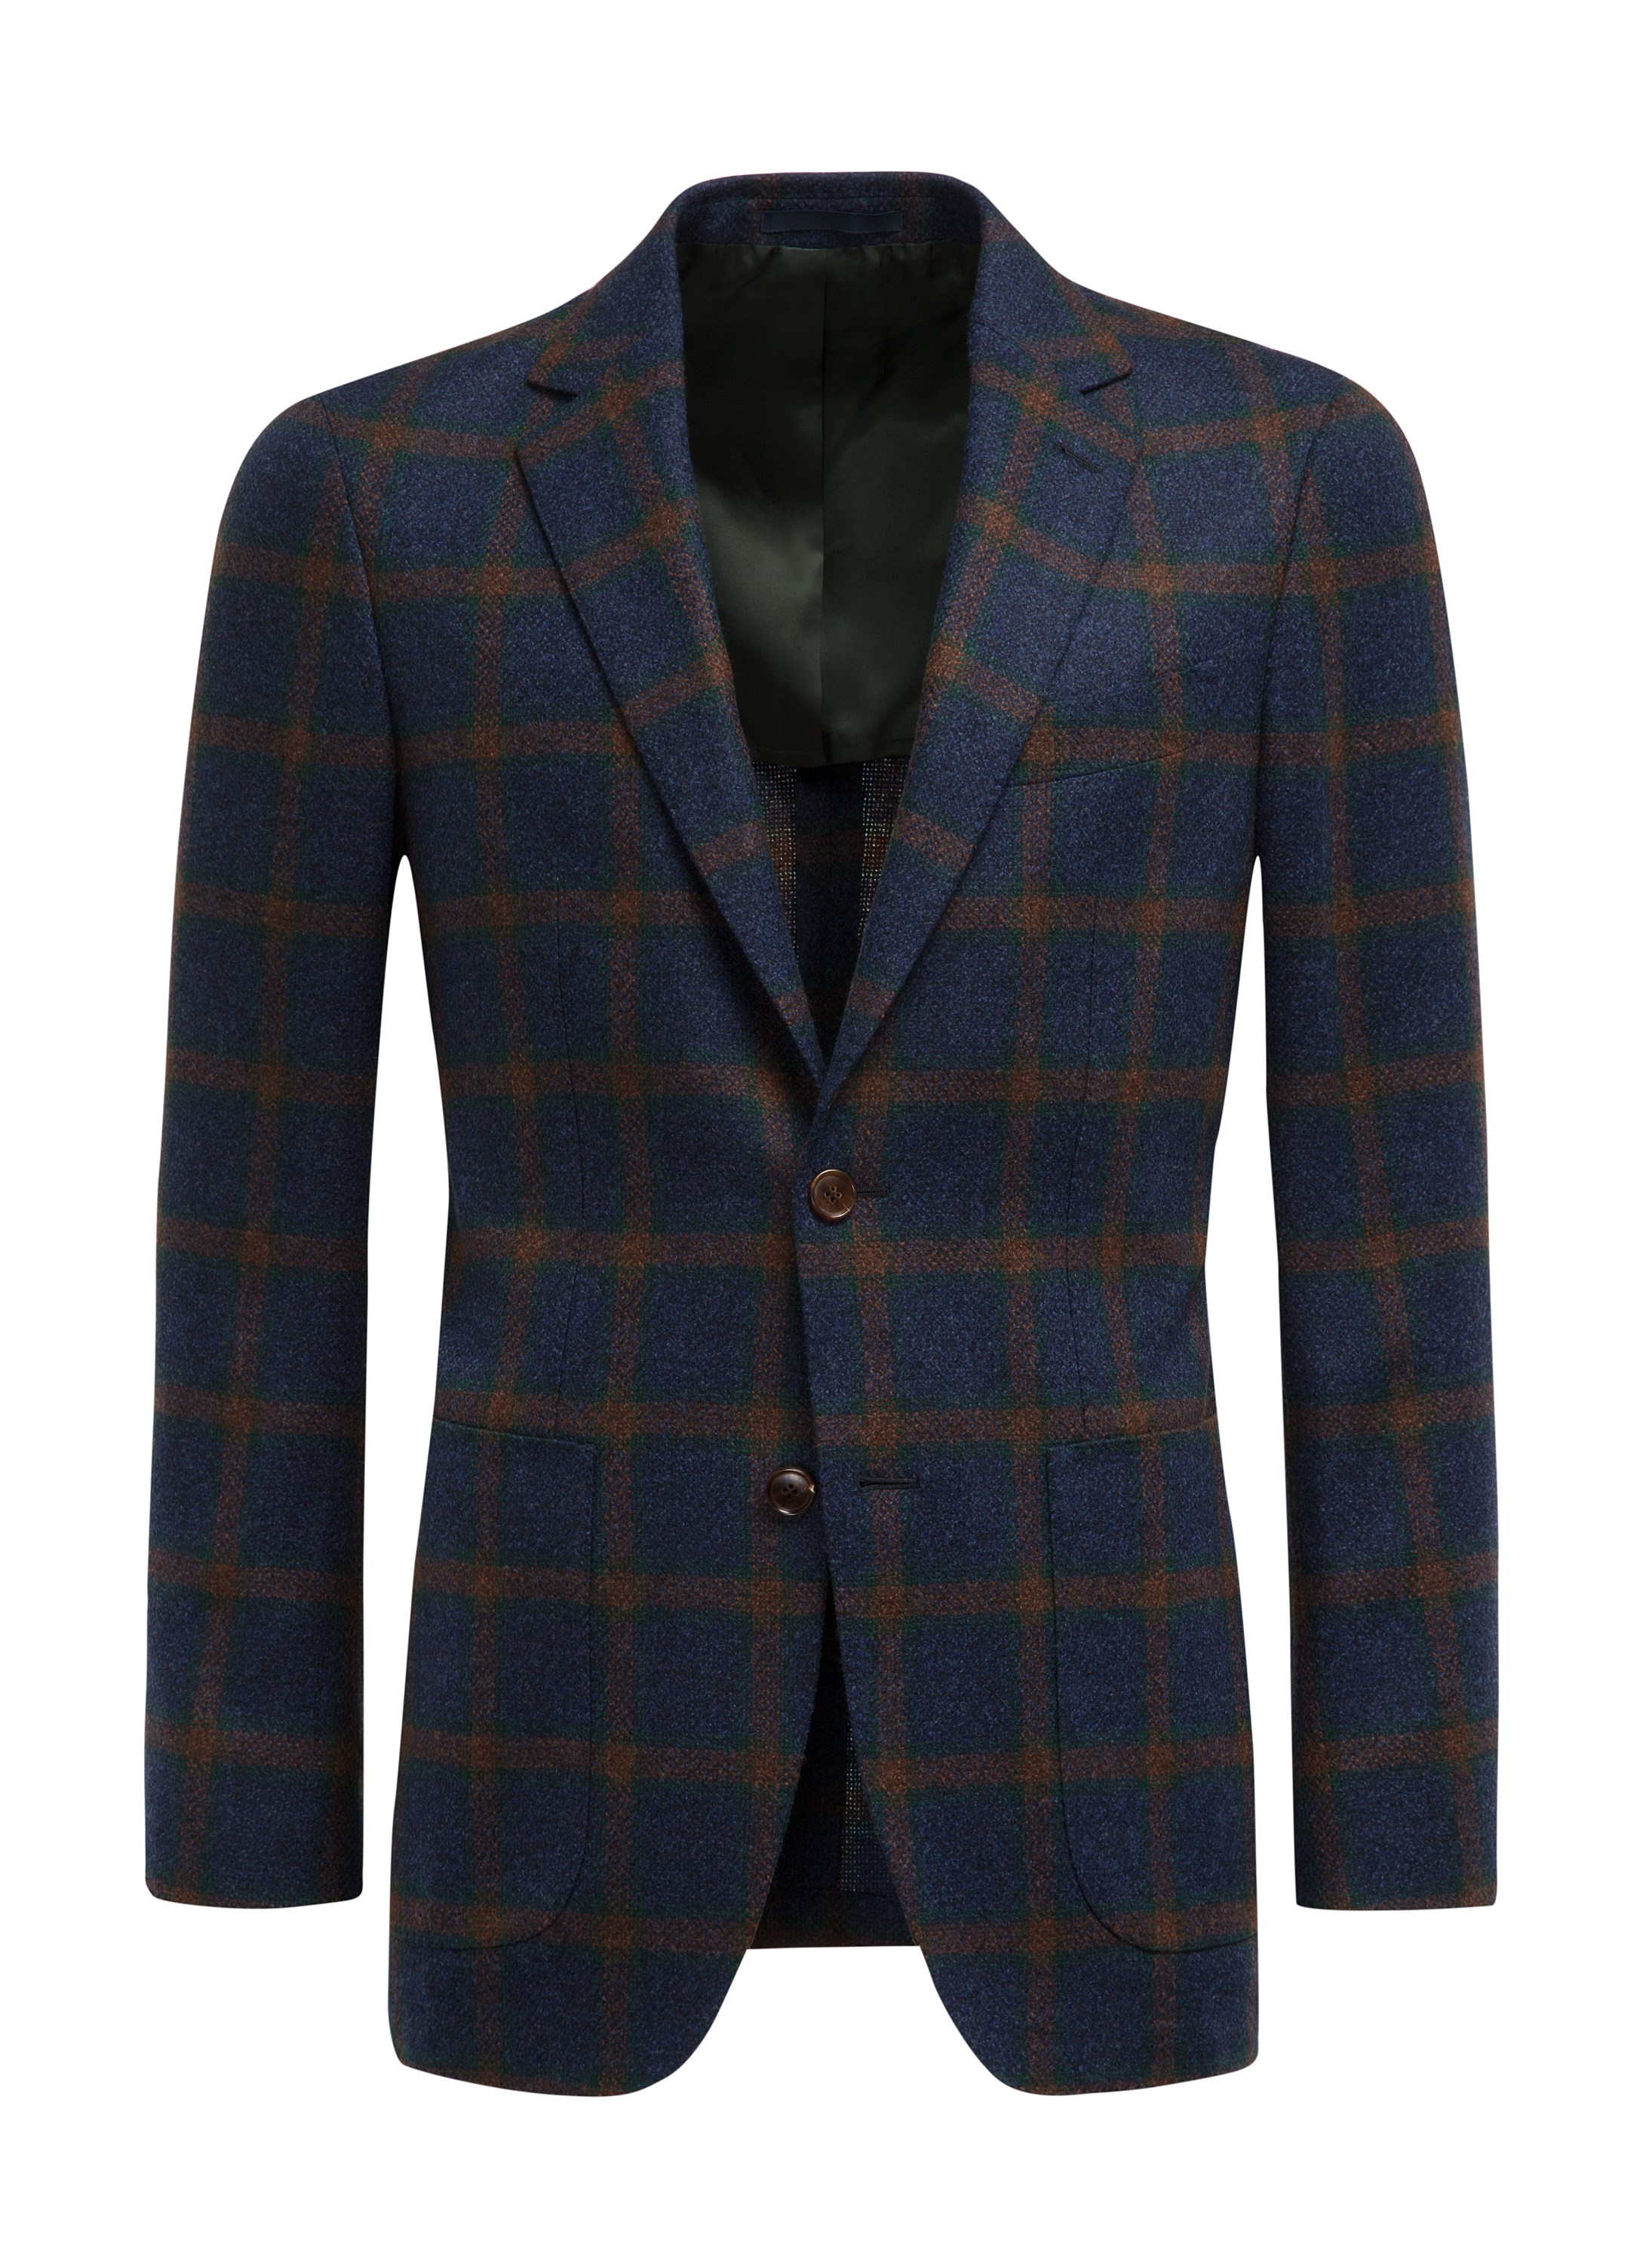 http://statics.suitsupply.com/images/products/Jackets/zoom/Jackets_Blue_Check_Havana_C901_Suitsupply_Online_Store_5.jpg